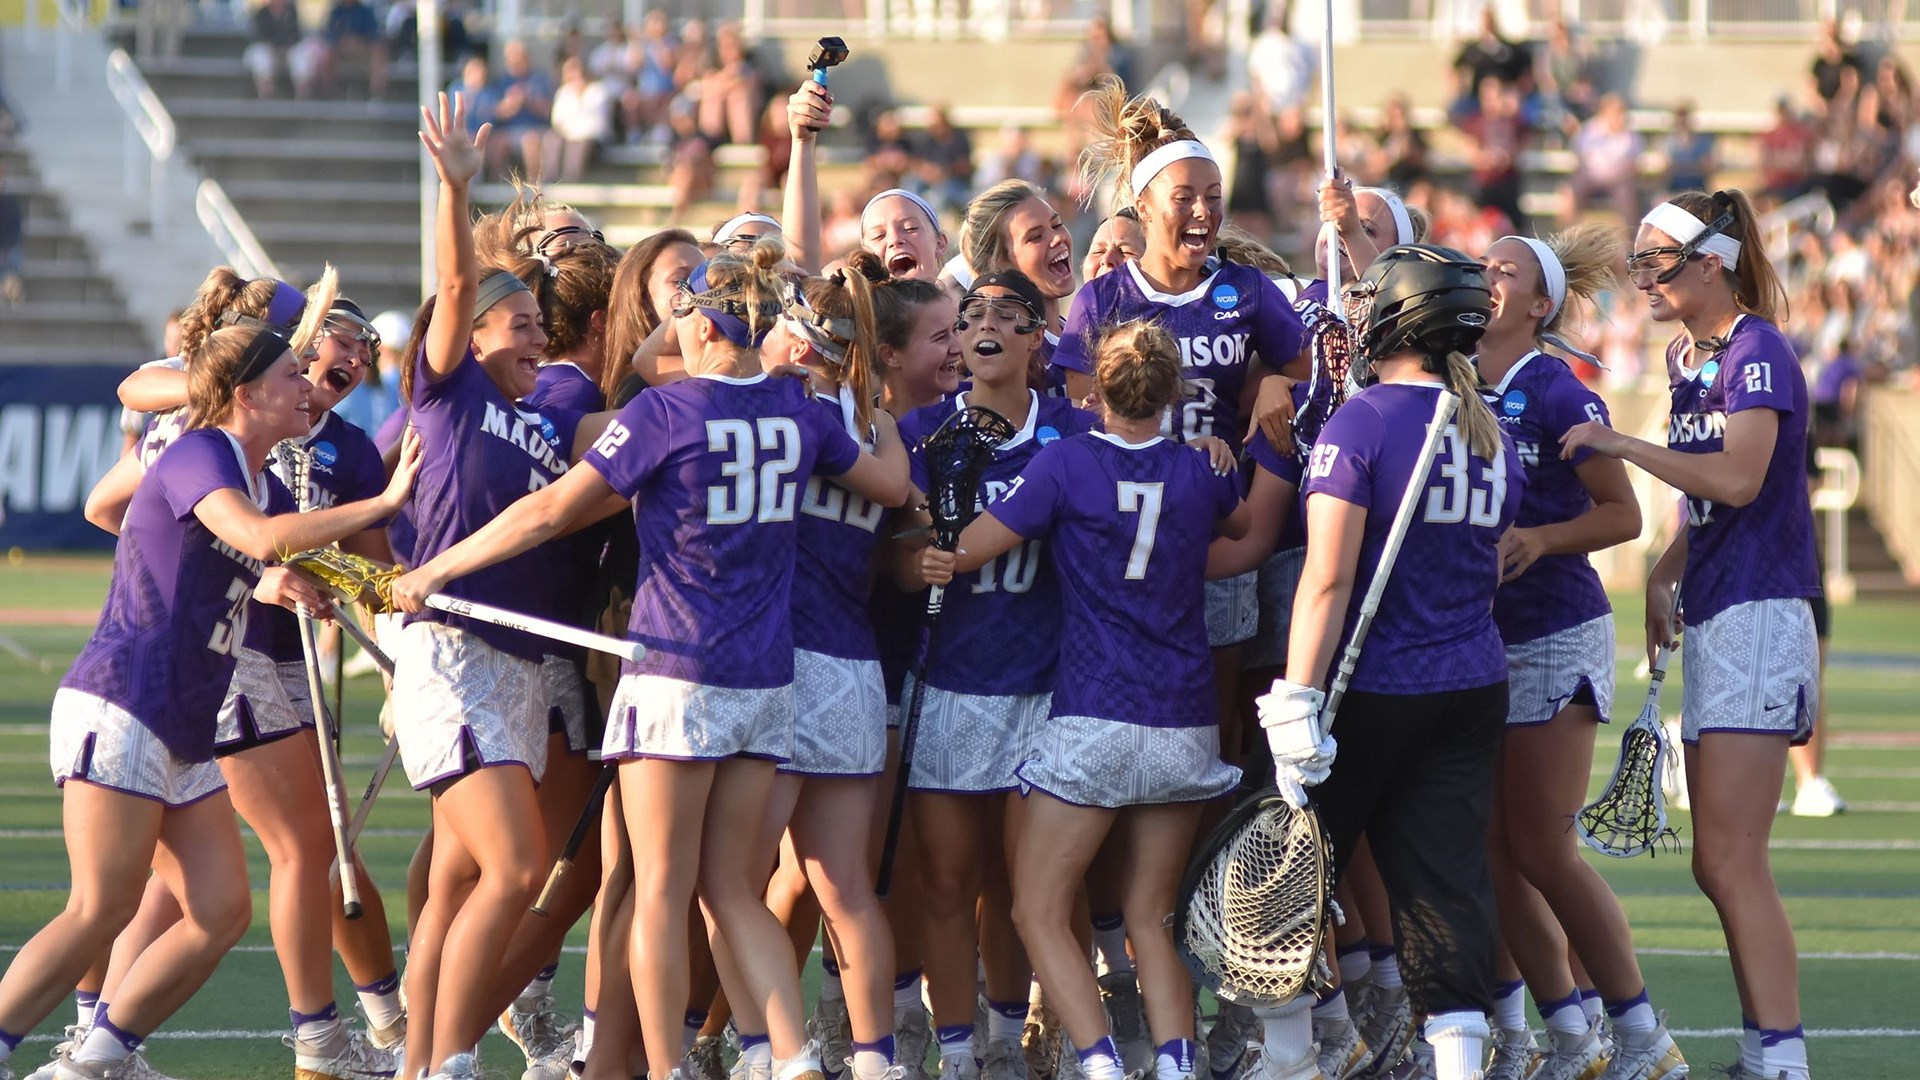 Women's Lacrosse: Dukes Advance to National Championship Game with 15-12 Win over UNC